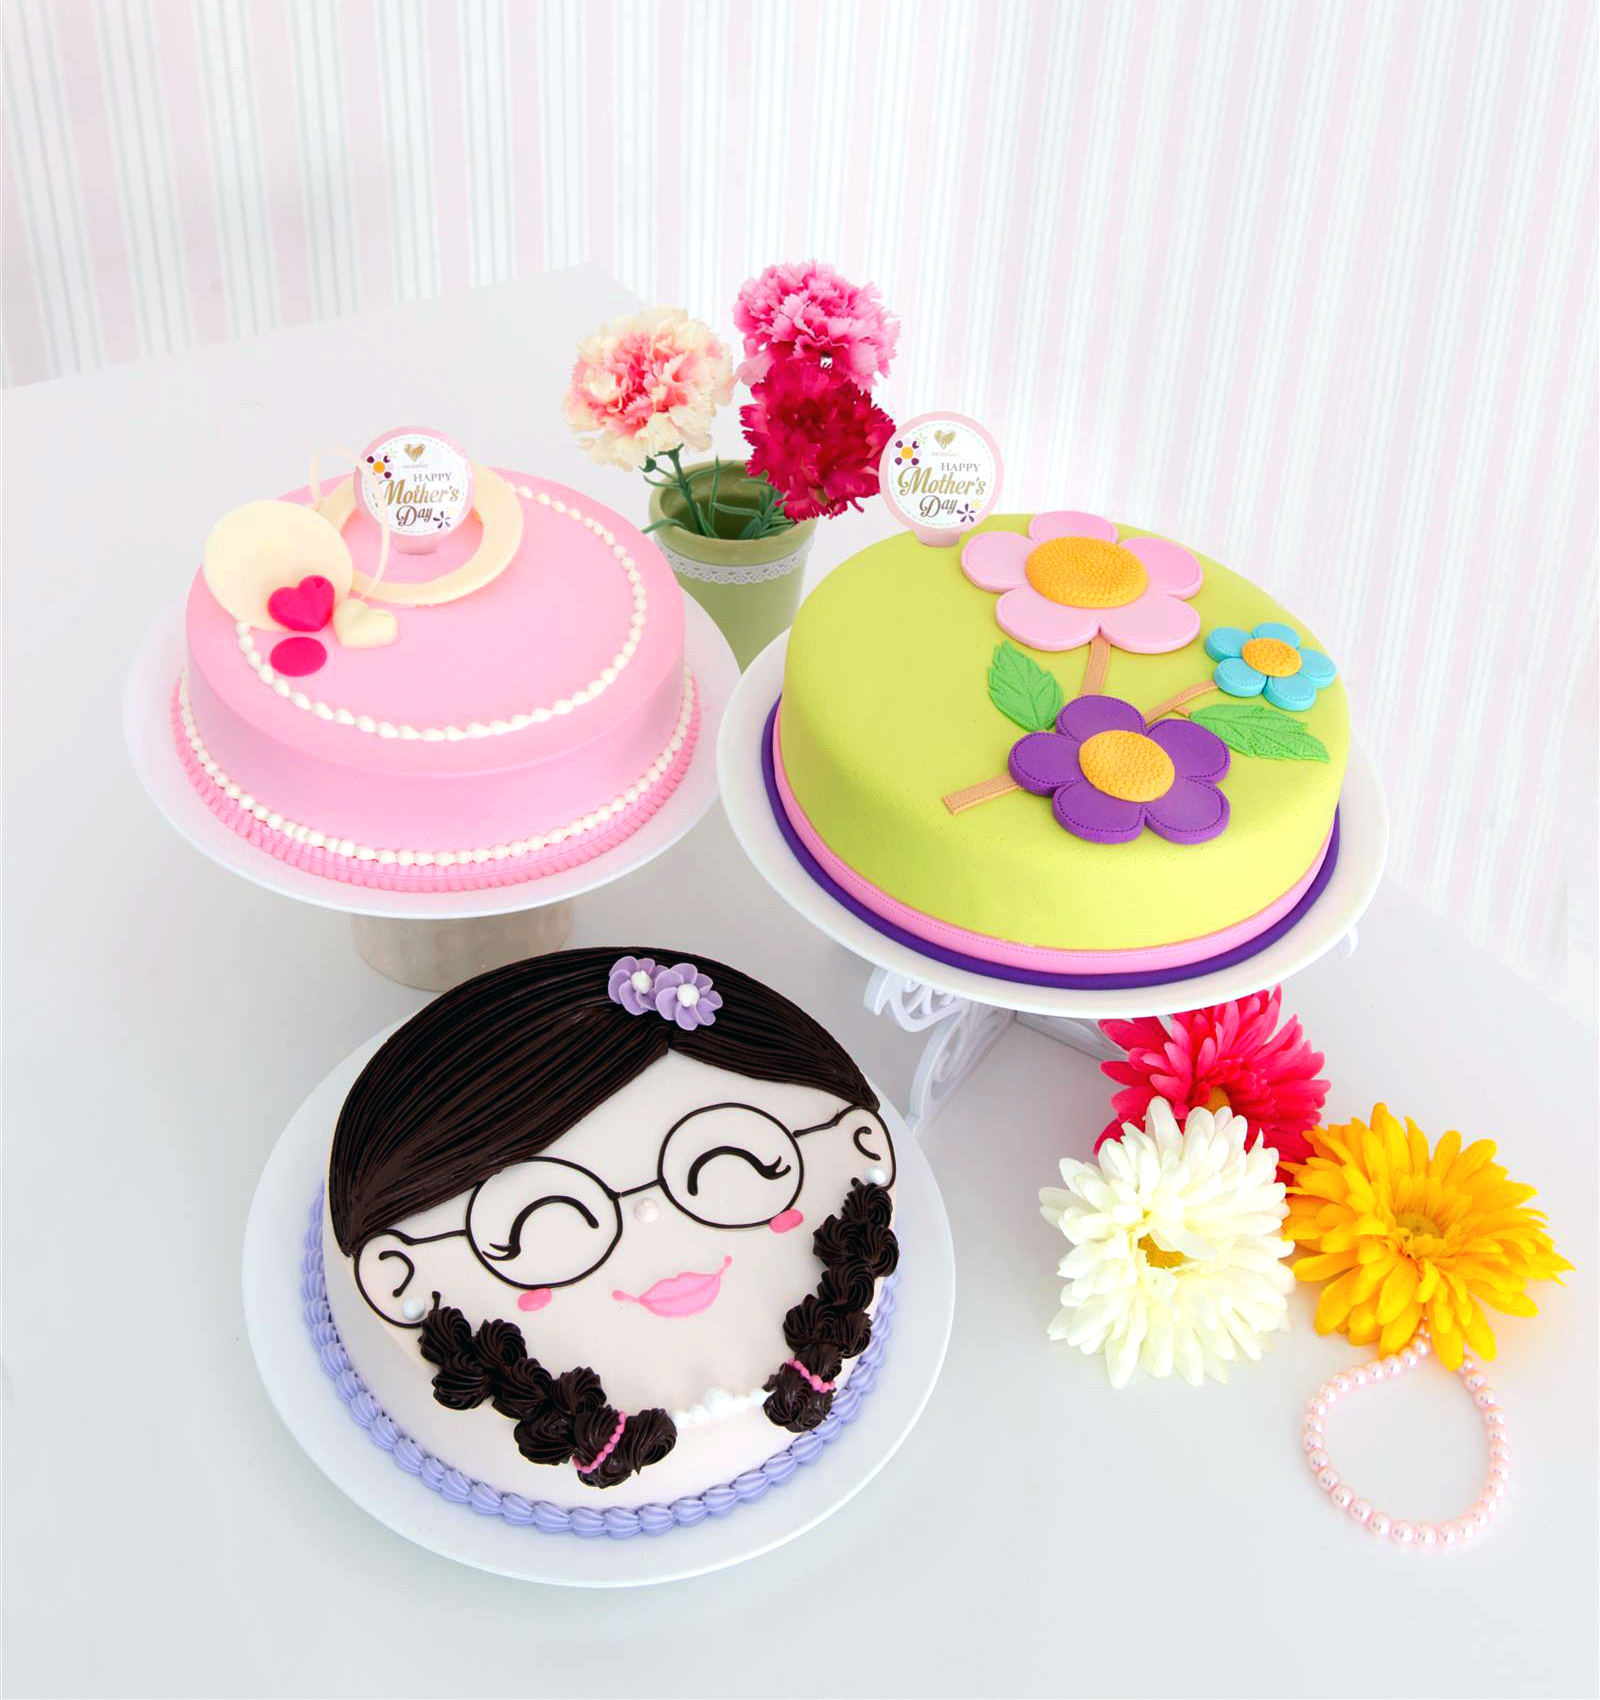 Emicakes Mother's Day Cakes 2014